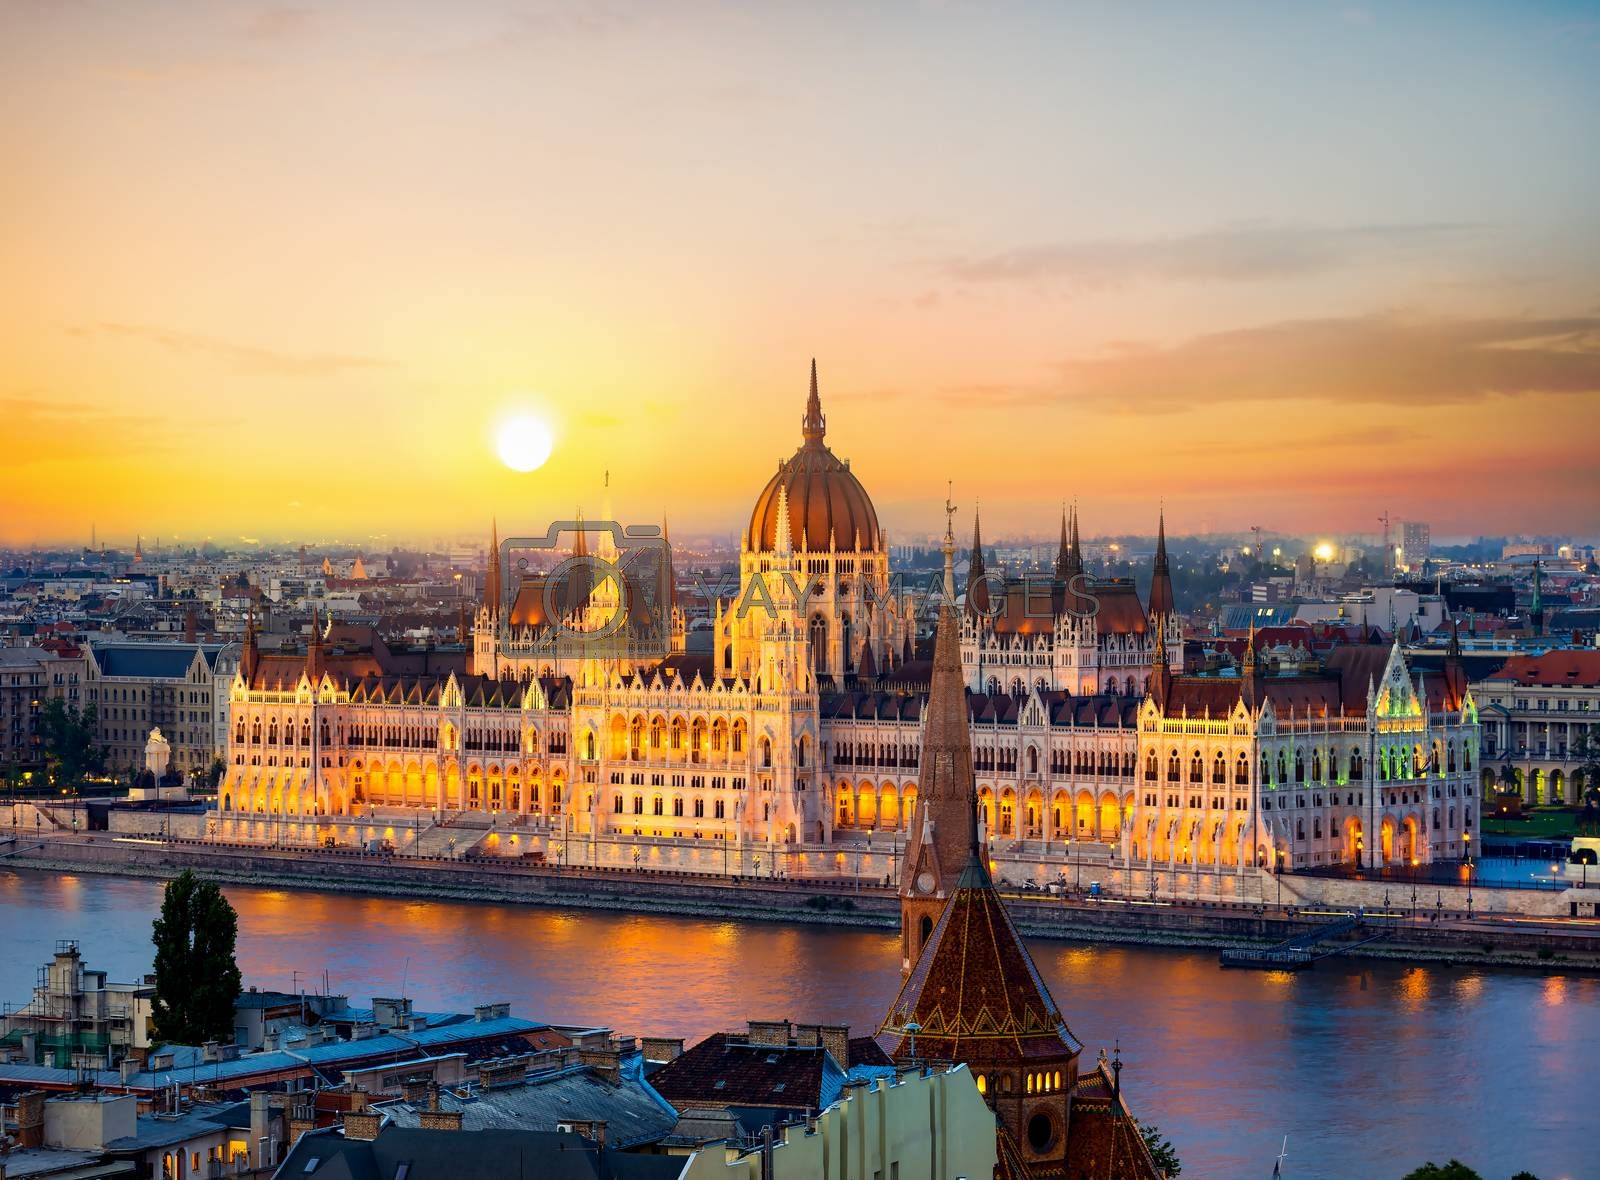 Hungarian parliament on riverbank of Danube illuminated in evening, Budapest